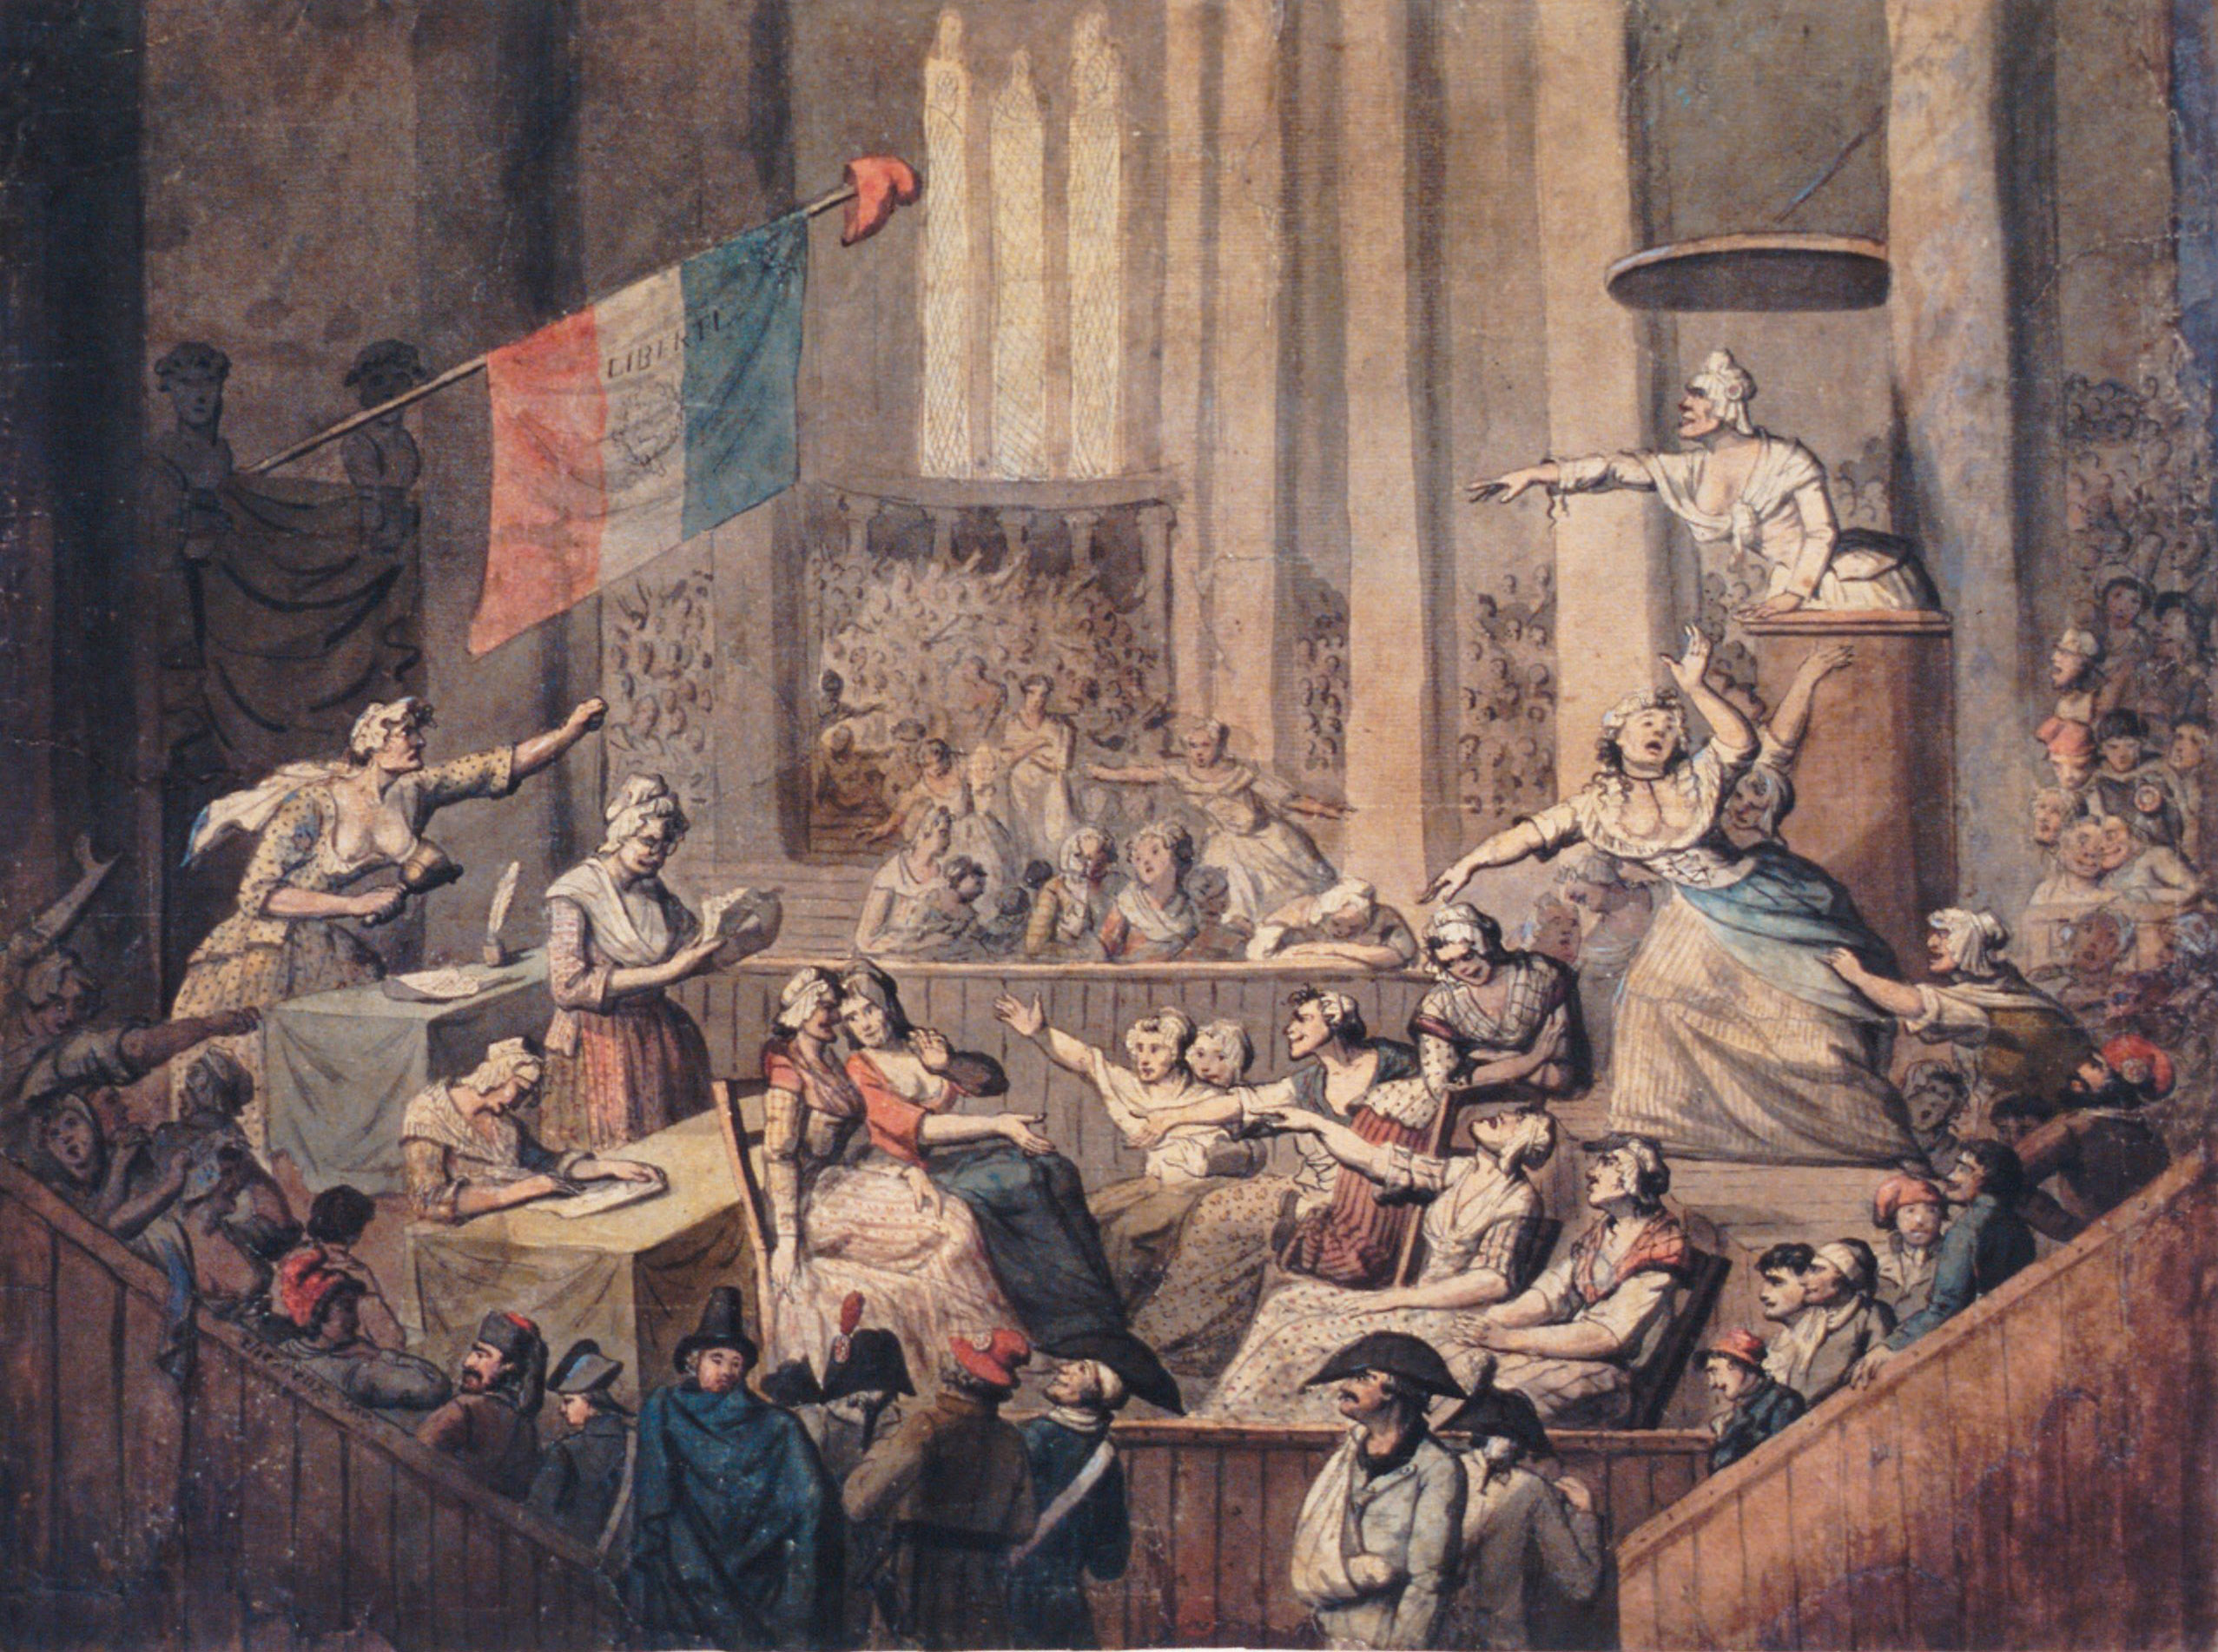 role political clubs frnech revolution What was the role of the jacobins in the french revolution a: the club was originally founded by breton representatives to the estates general but their strong support for liberty and equality continued to influence later political groups in the french republic learn more about modern.